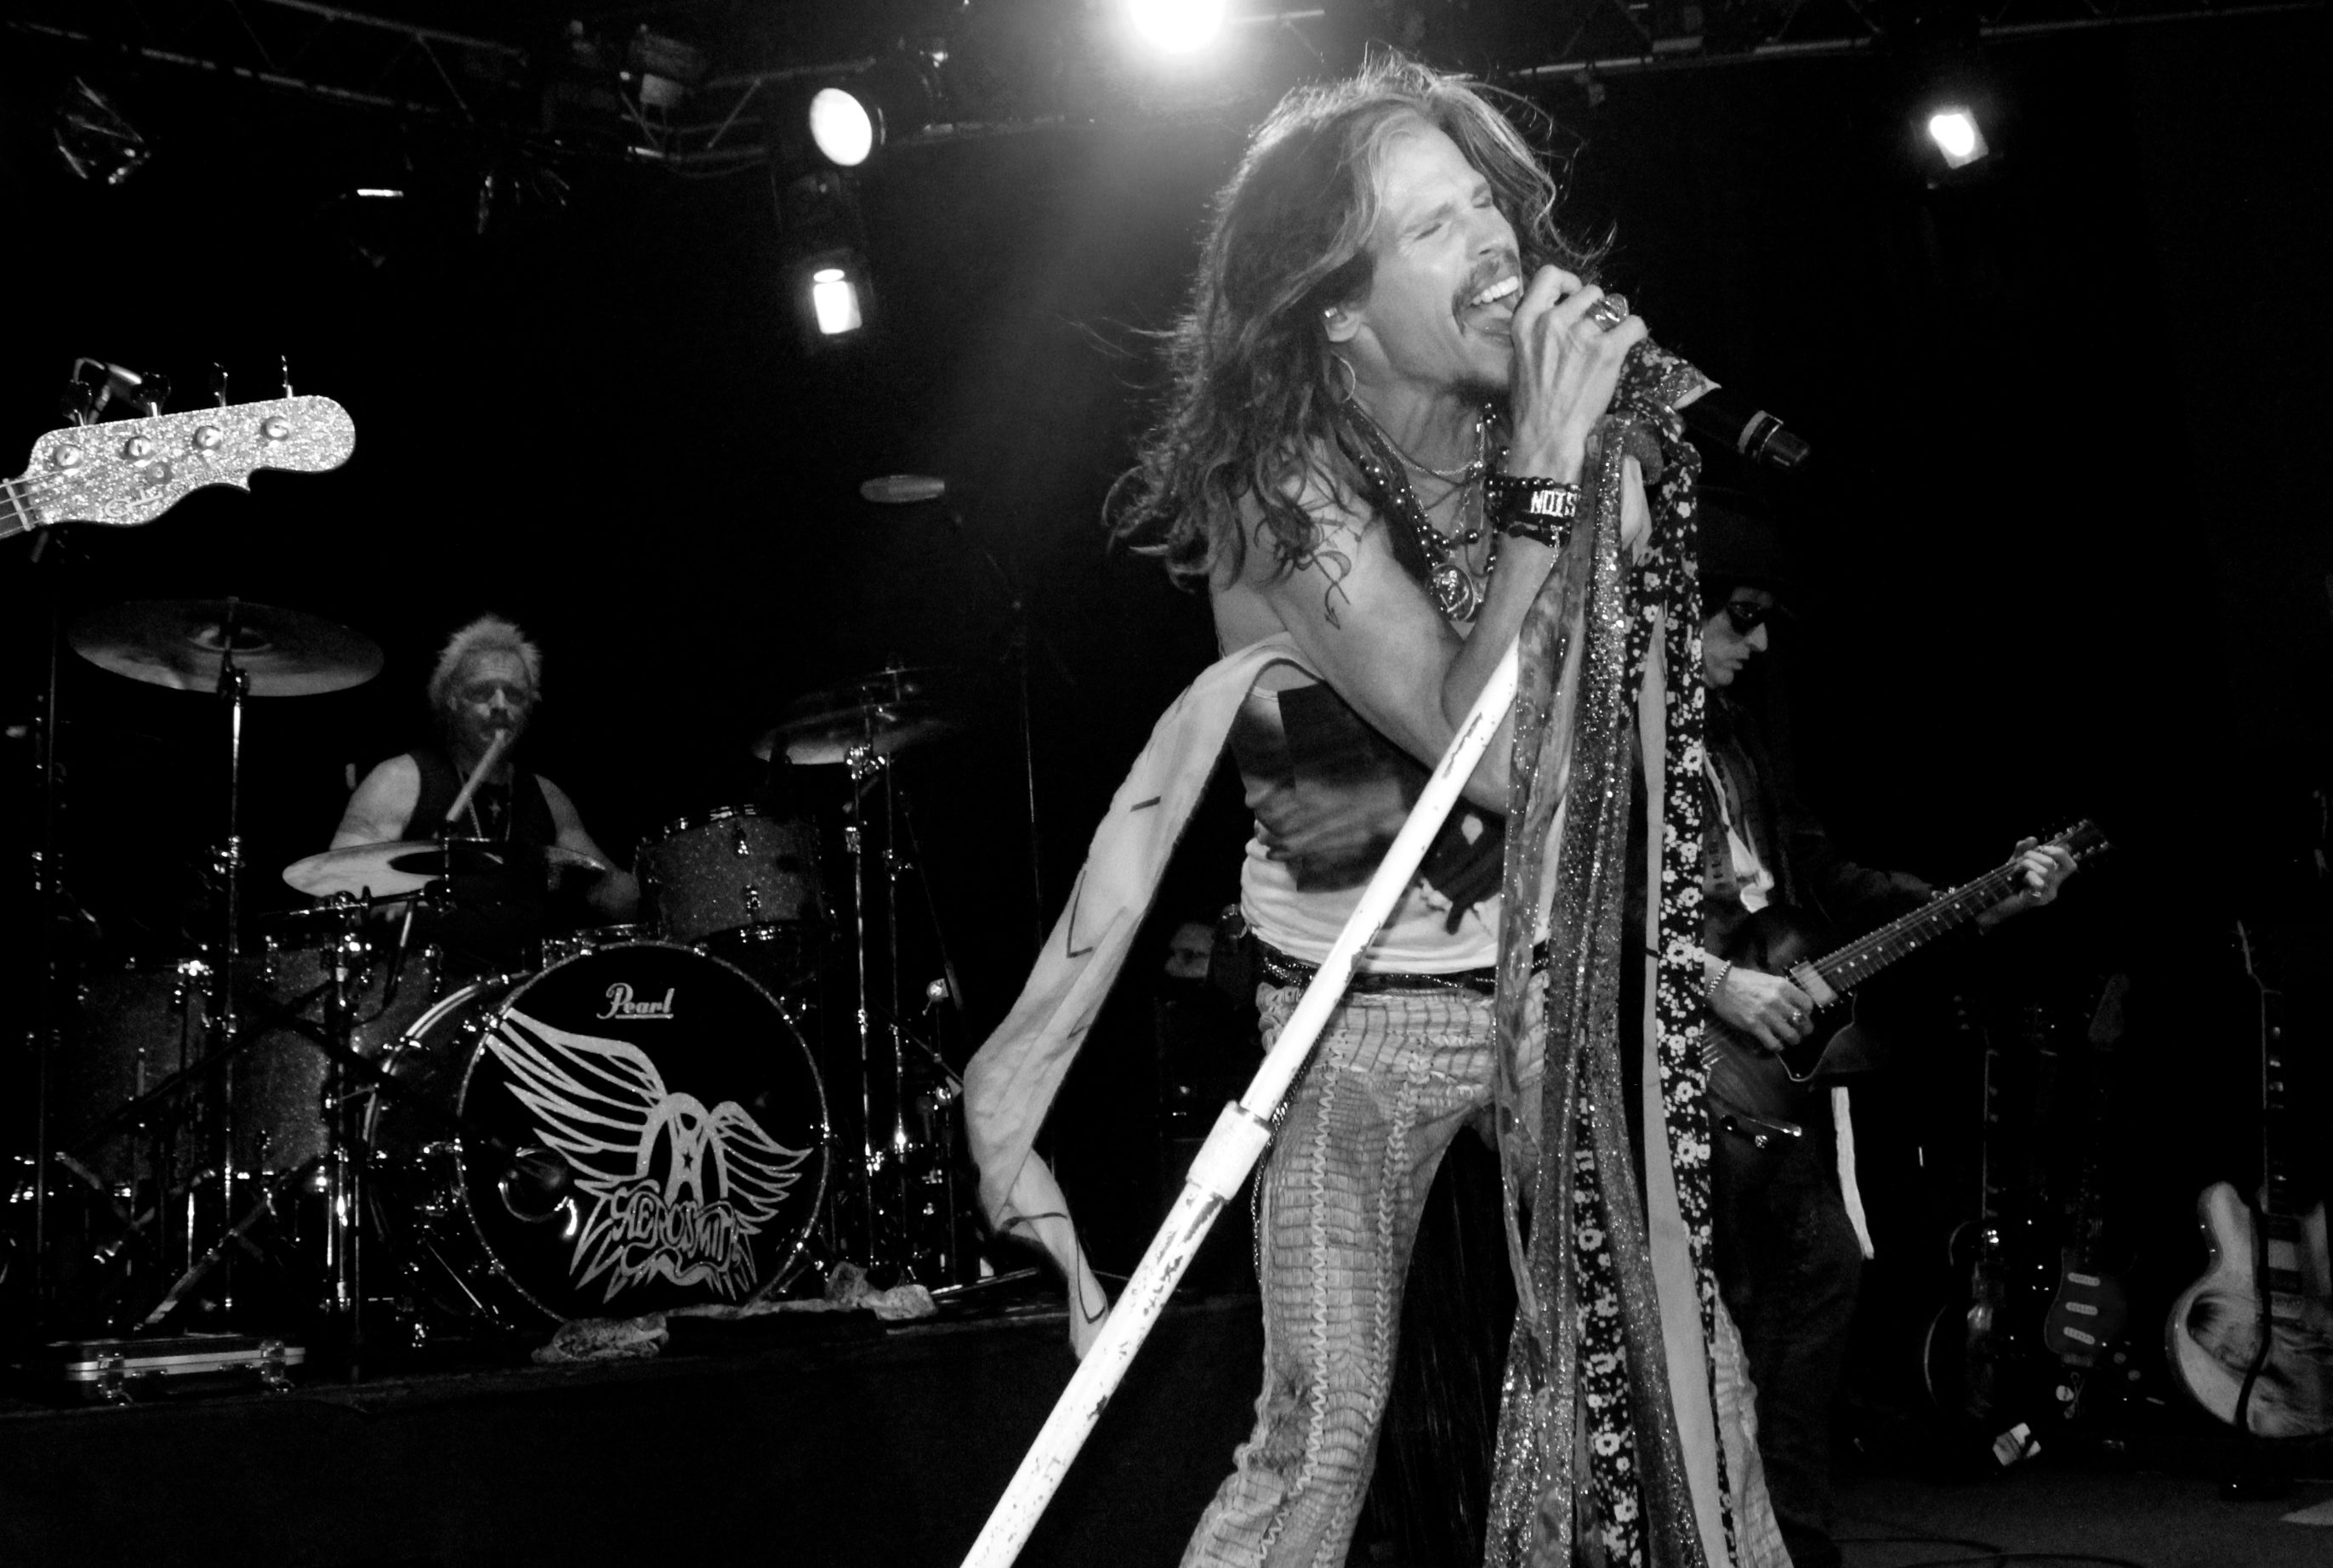 Steven Tyler Sends President Donald Trump Cease and Desist Order Over Unauthorized Playing of Aerosmith Songs at Rallies